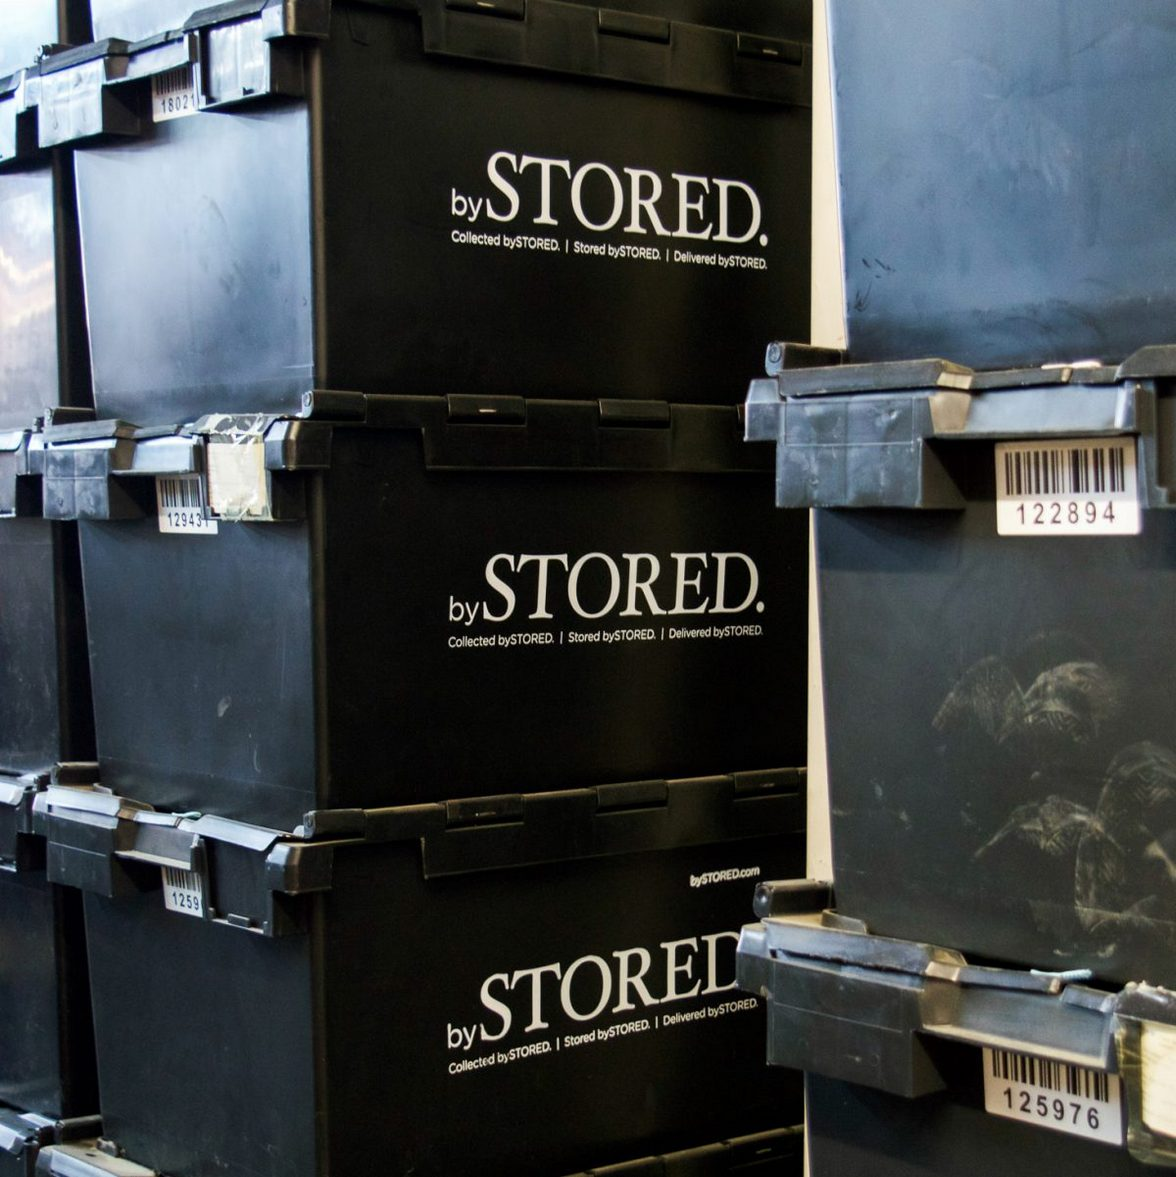 Storage boxes stacked inside a storage facility.